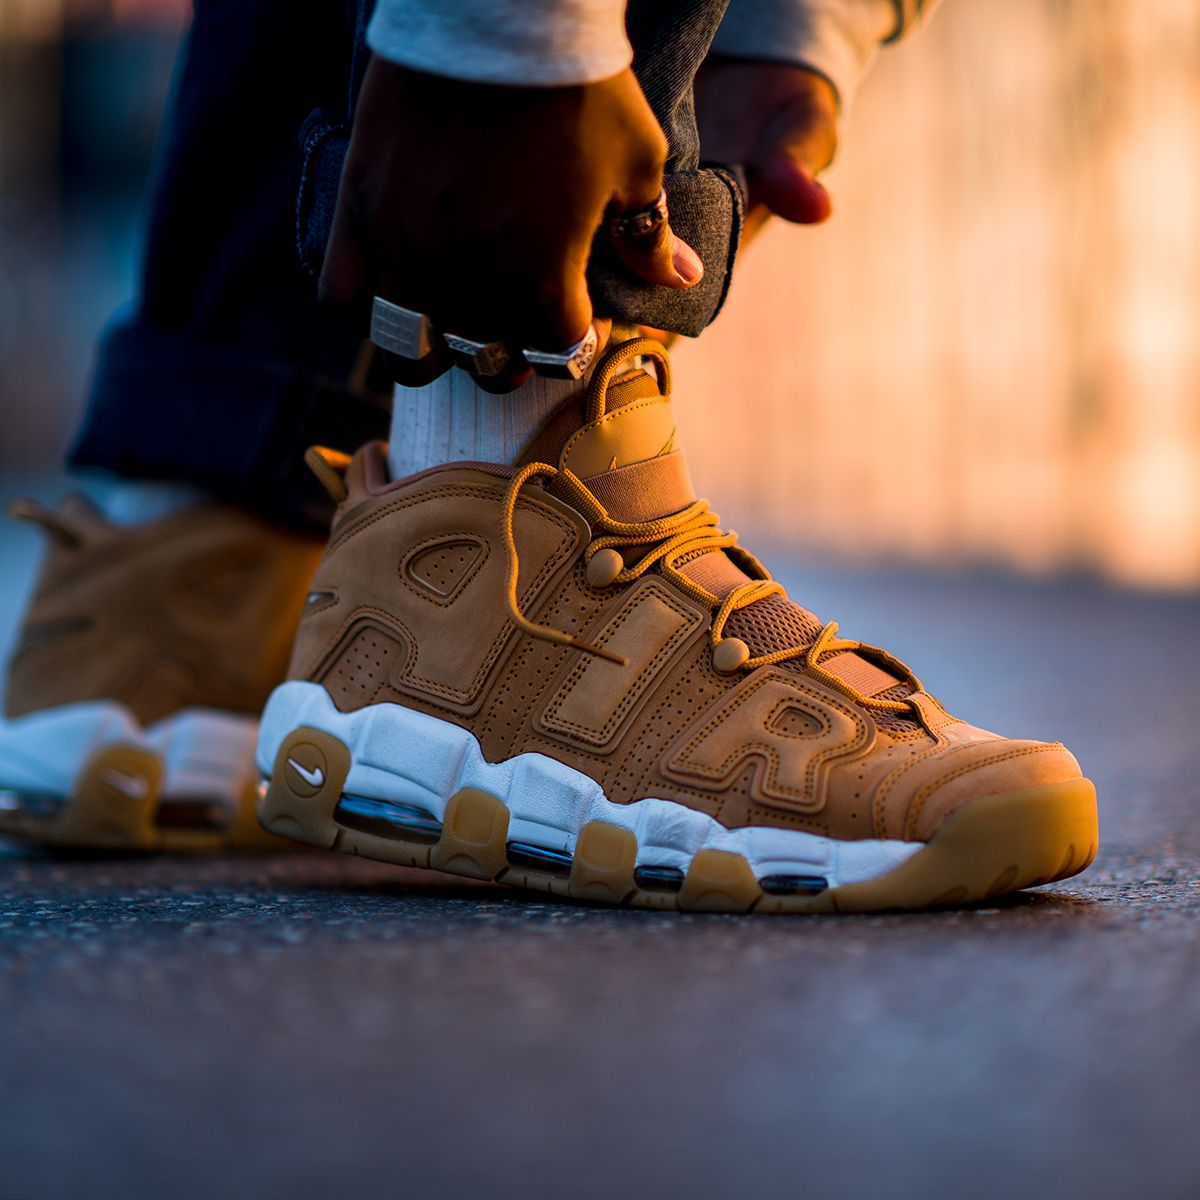 b9a6b0ad6d The legendary Nike Air More Uptempo '96 PRM in 'Flax' colorway. Now  available at KICKZ.com